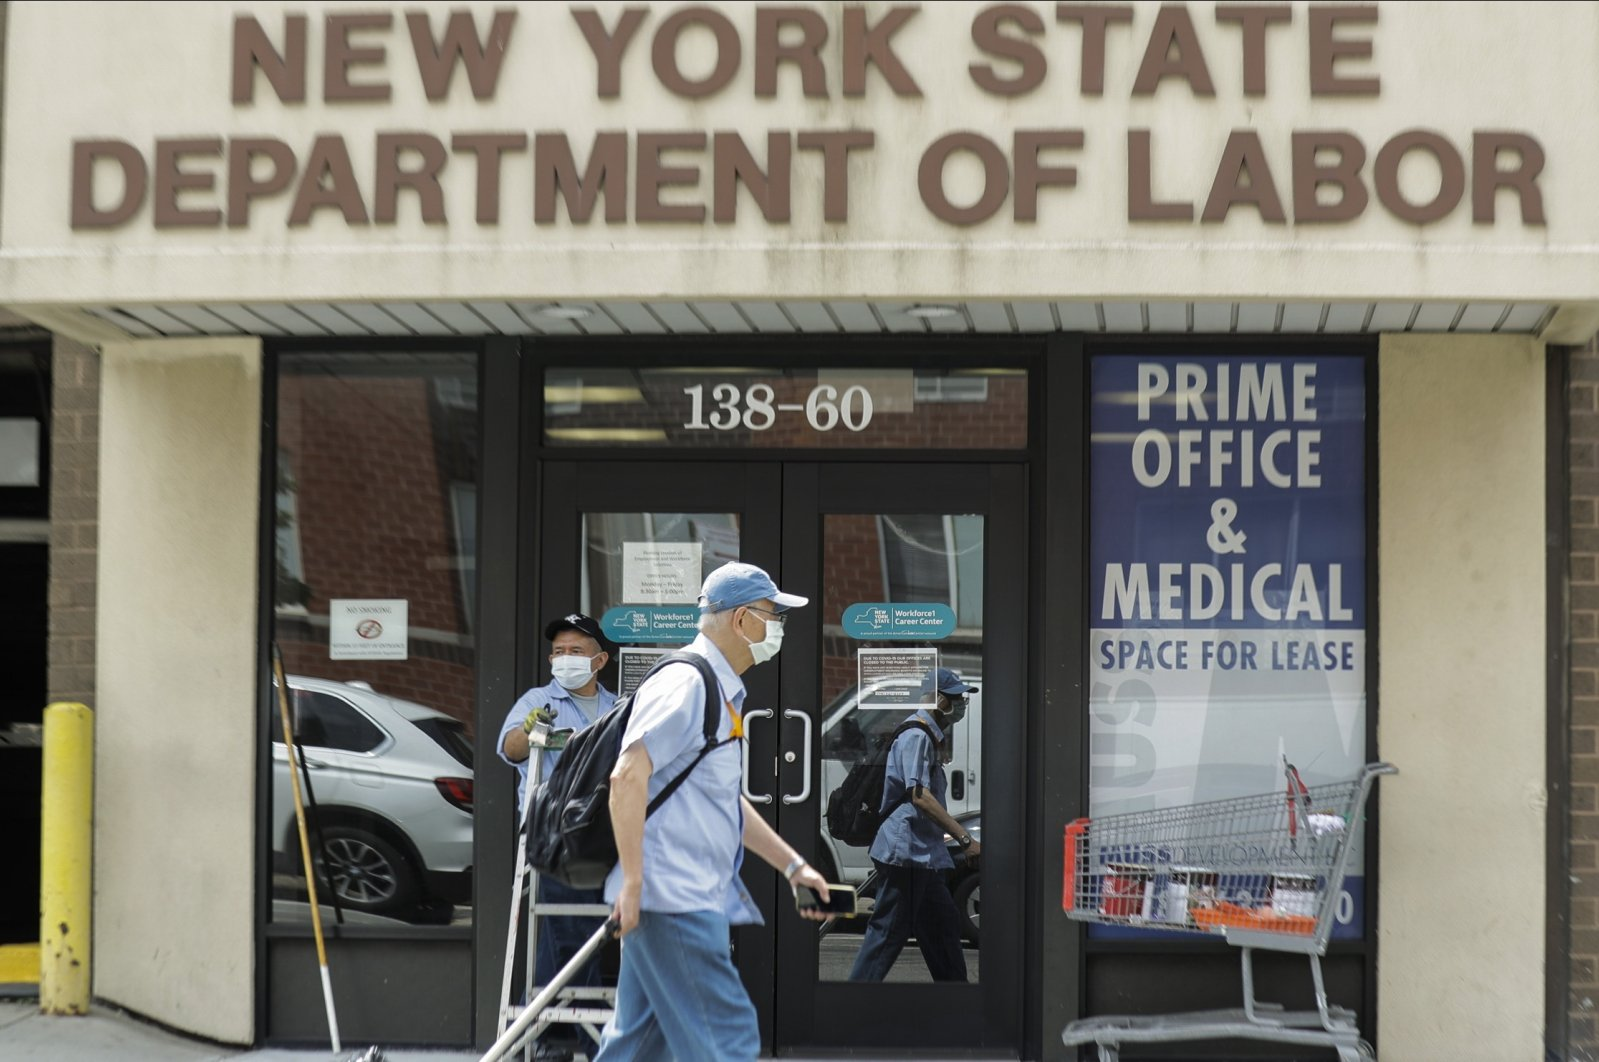 Pedestrians pass an office location for the New York State Department of Labor in the Queens borough of New York City, New York, US., June 11, 2020. (AP Photo)